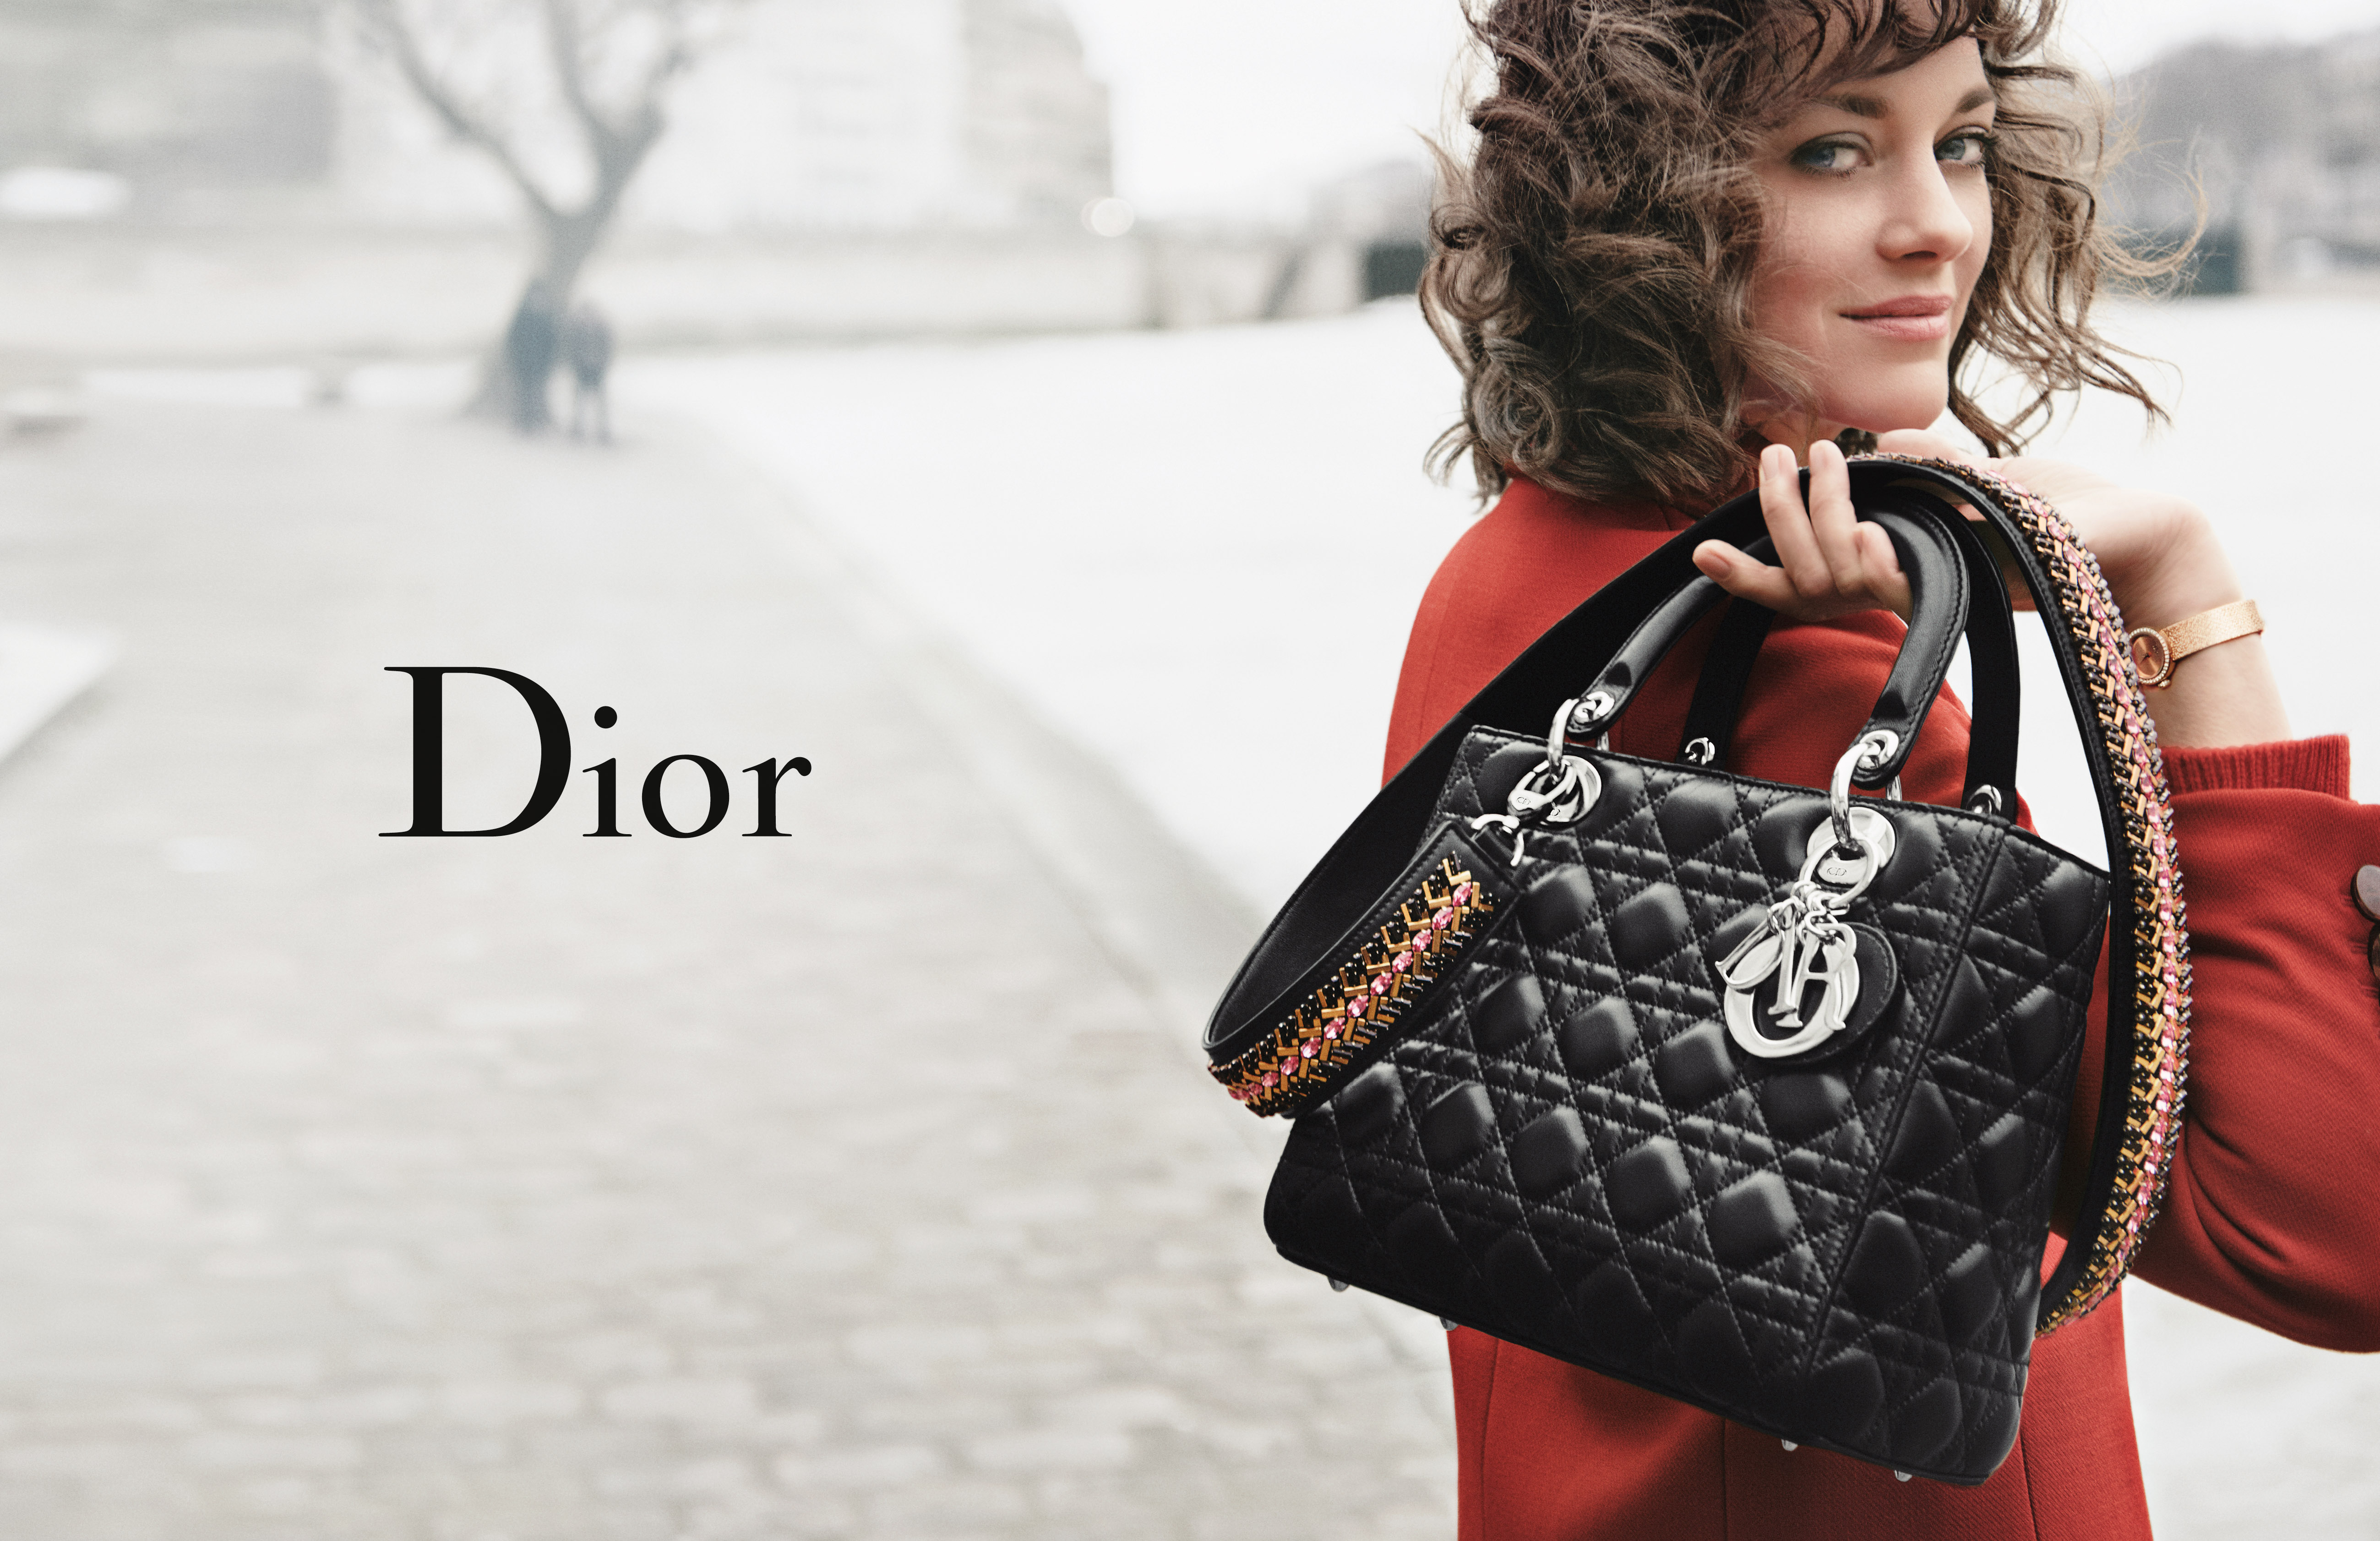 Marion Cotillard in the Lady Dior campaign shot by Peter Lindbergh